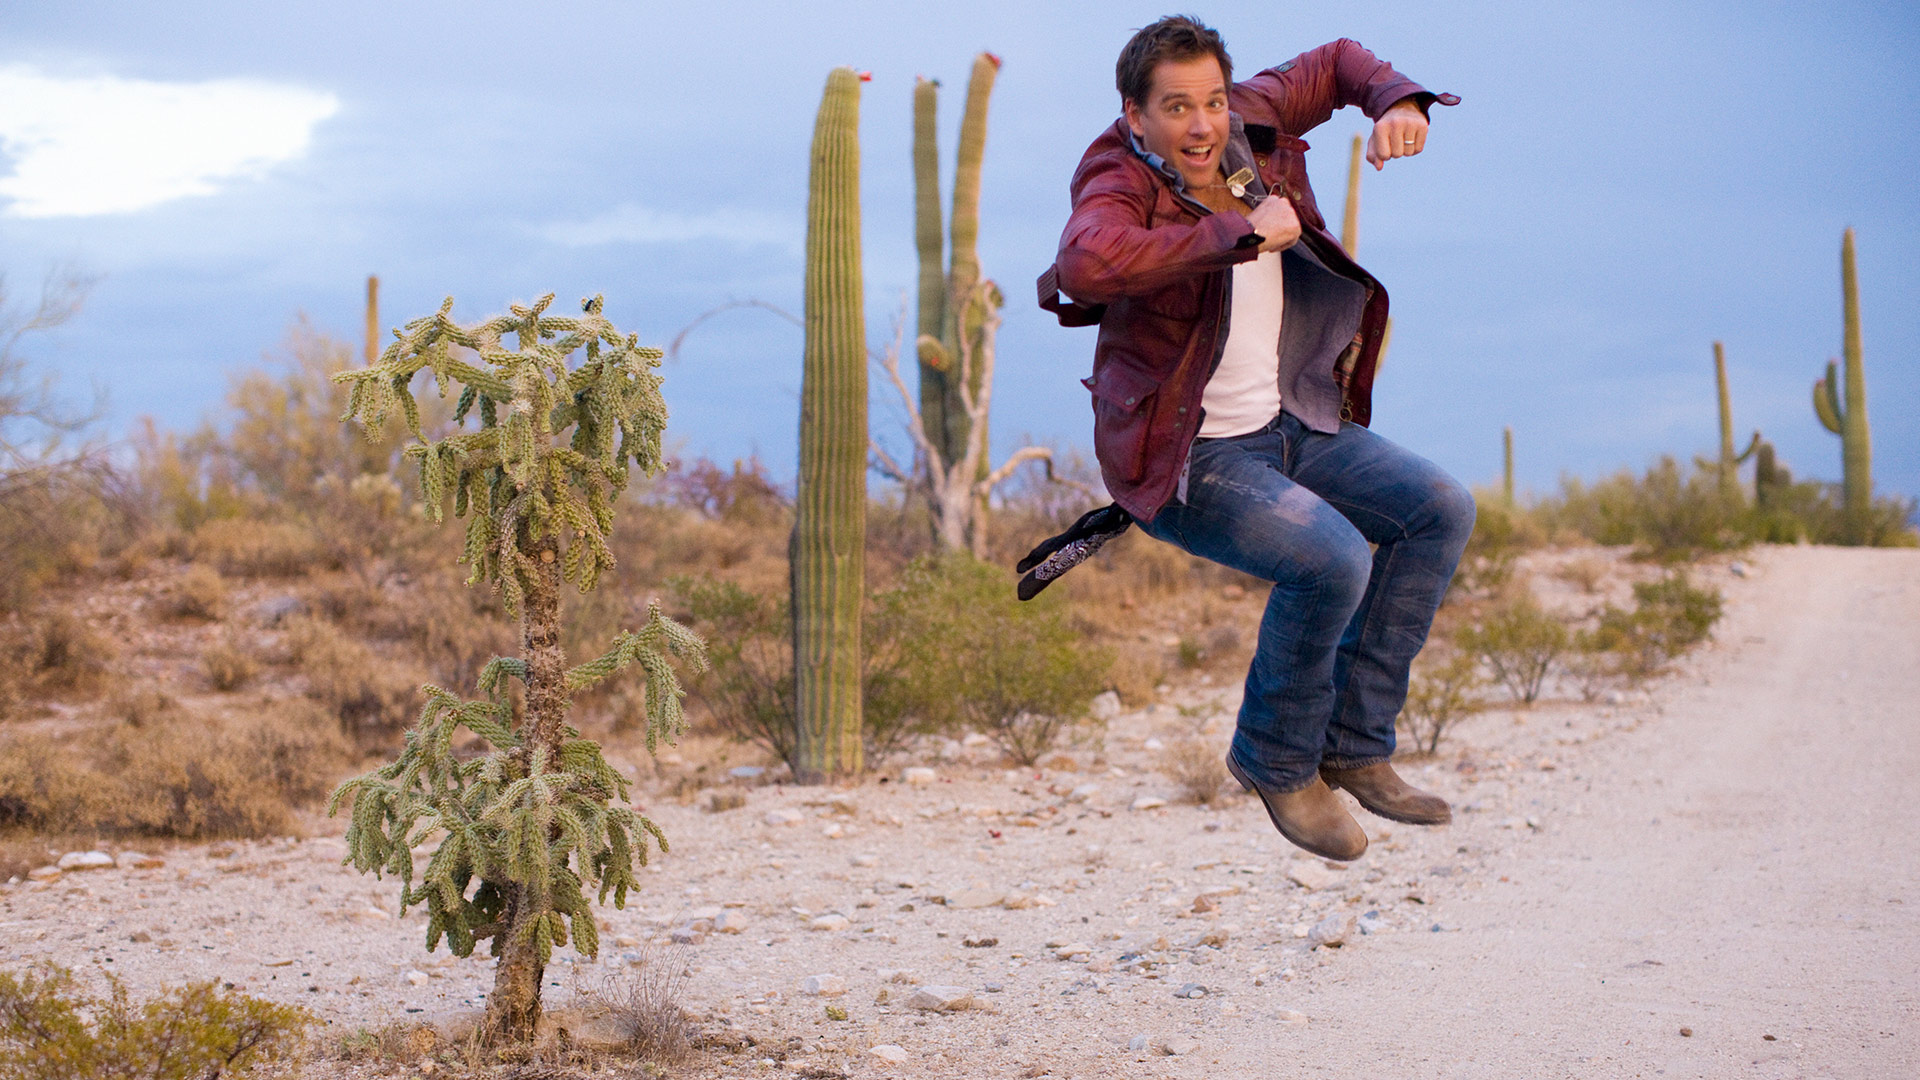 Michael Weatherly jumps for joy